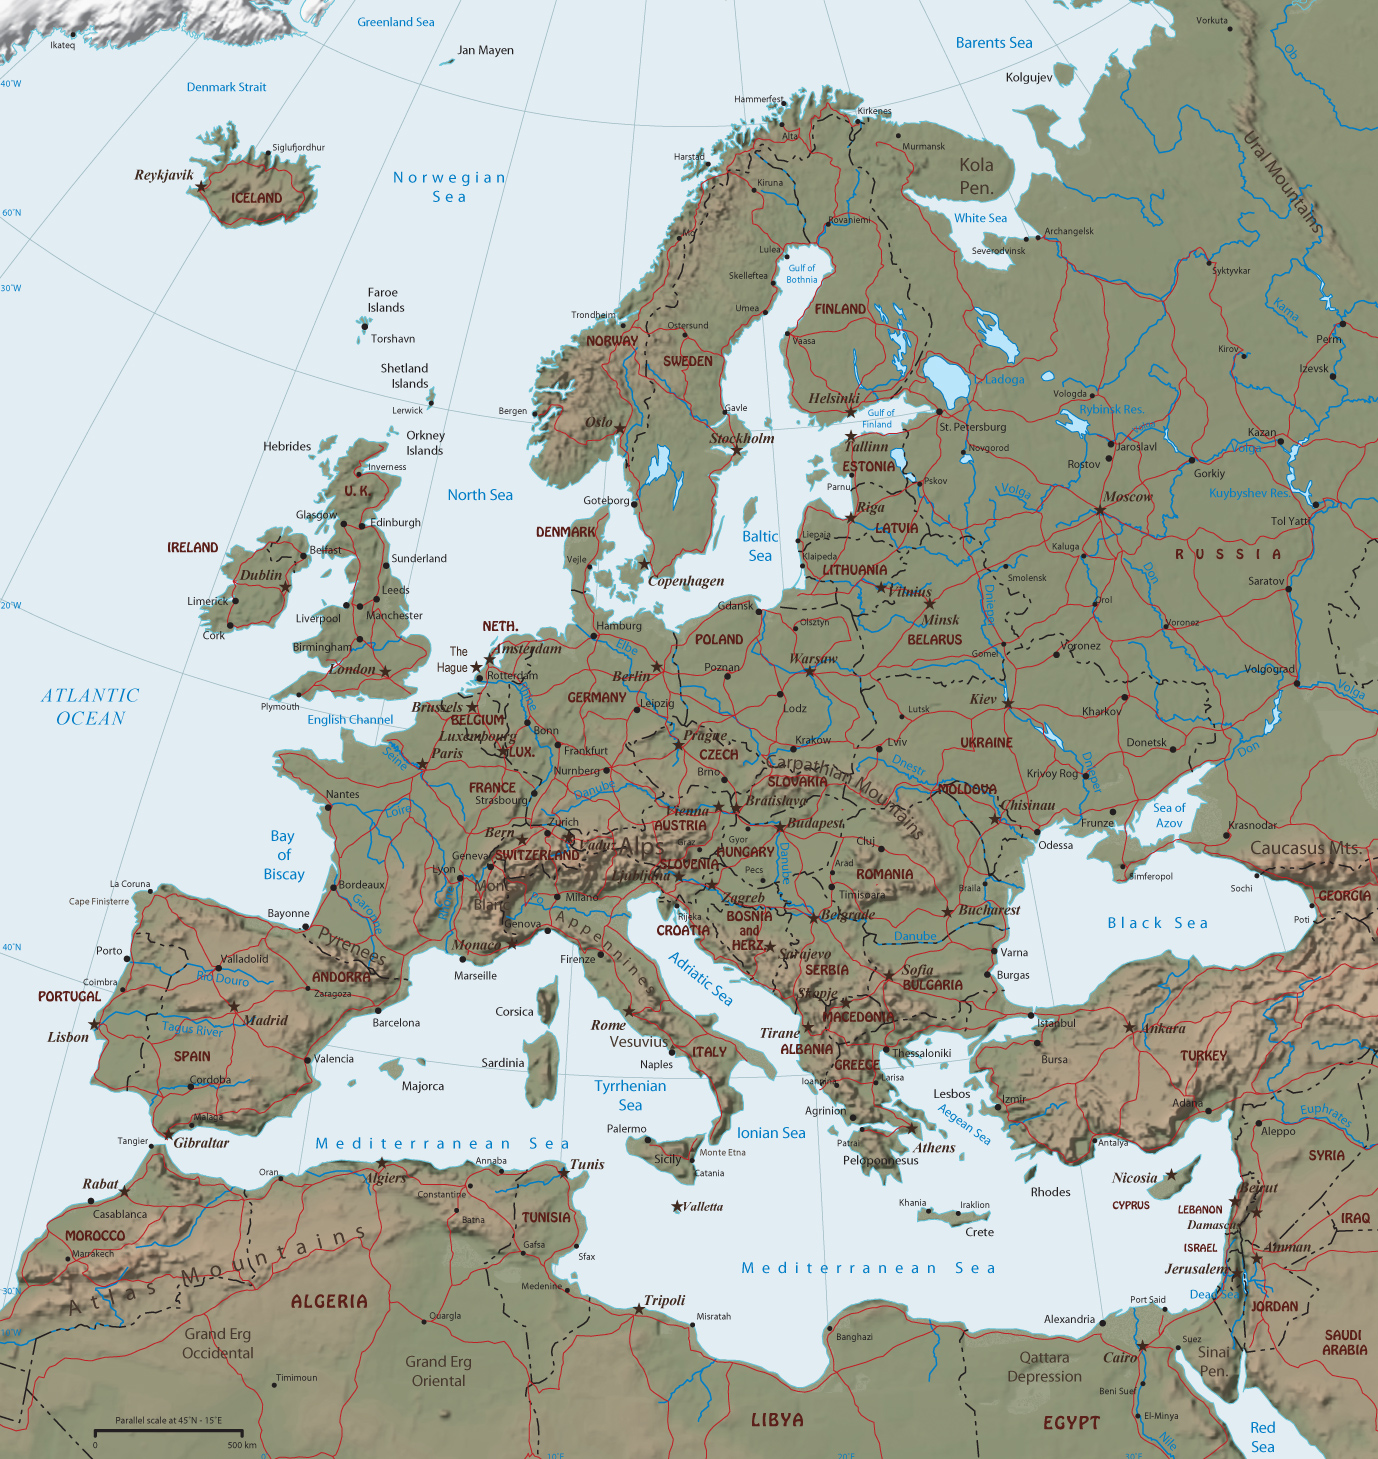 Maps world geographic guide travel european continent north america political map gumiabroncs Image collections